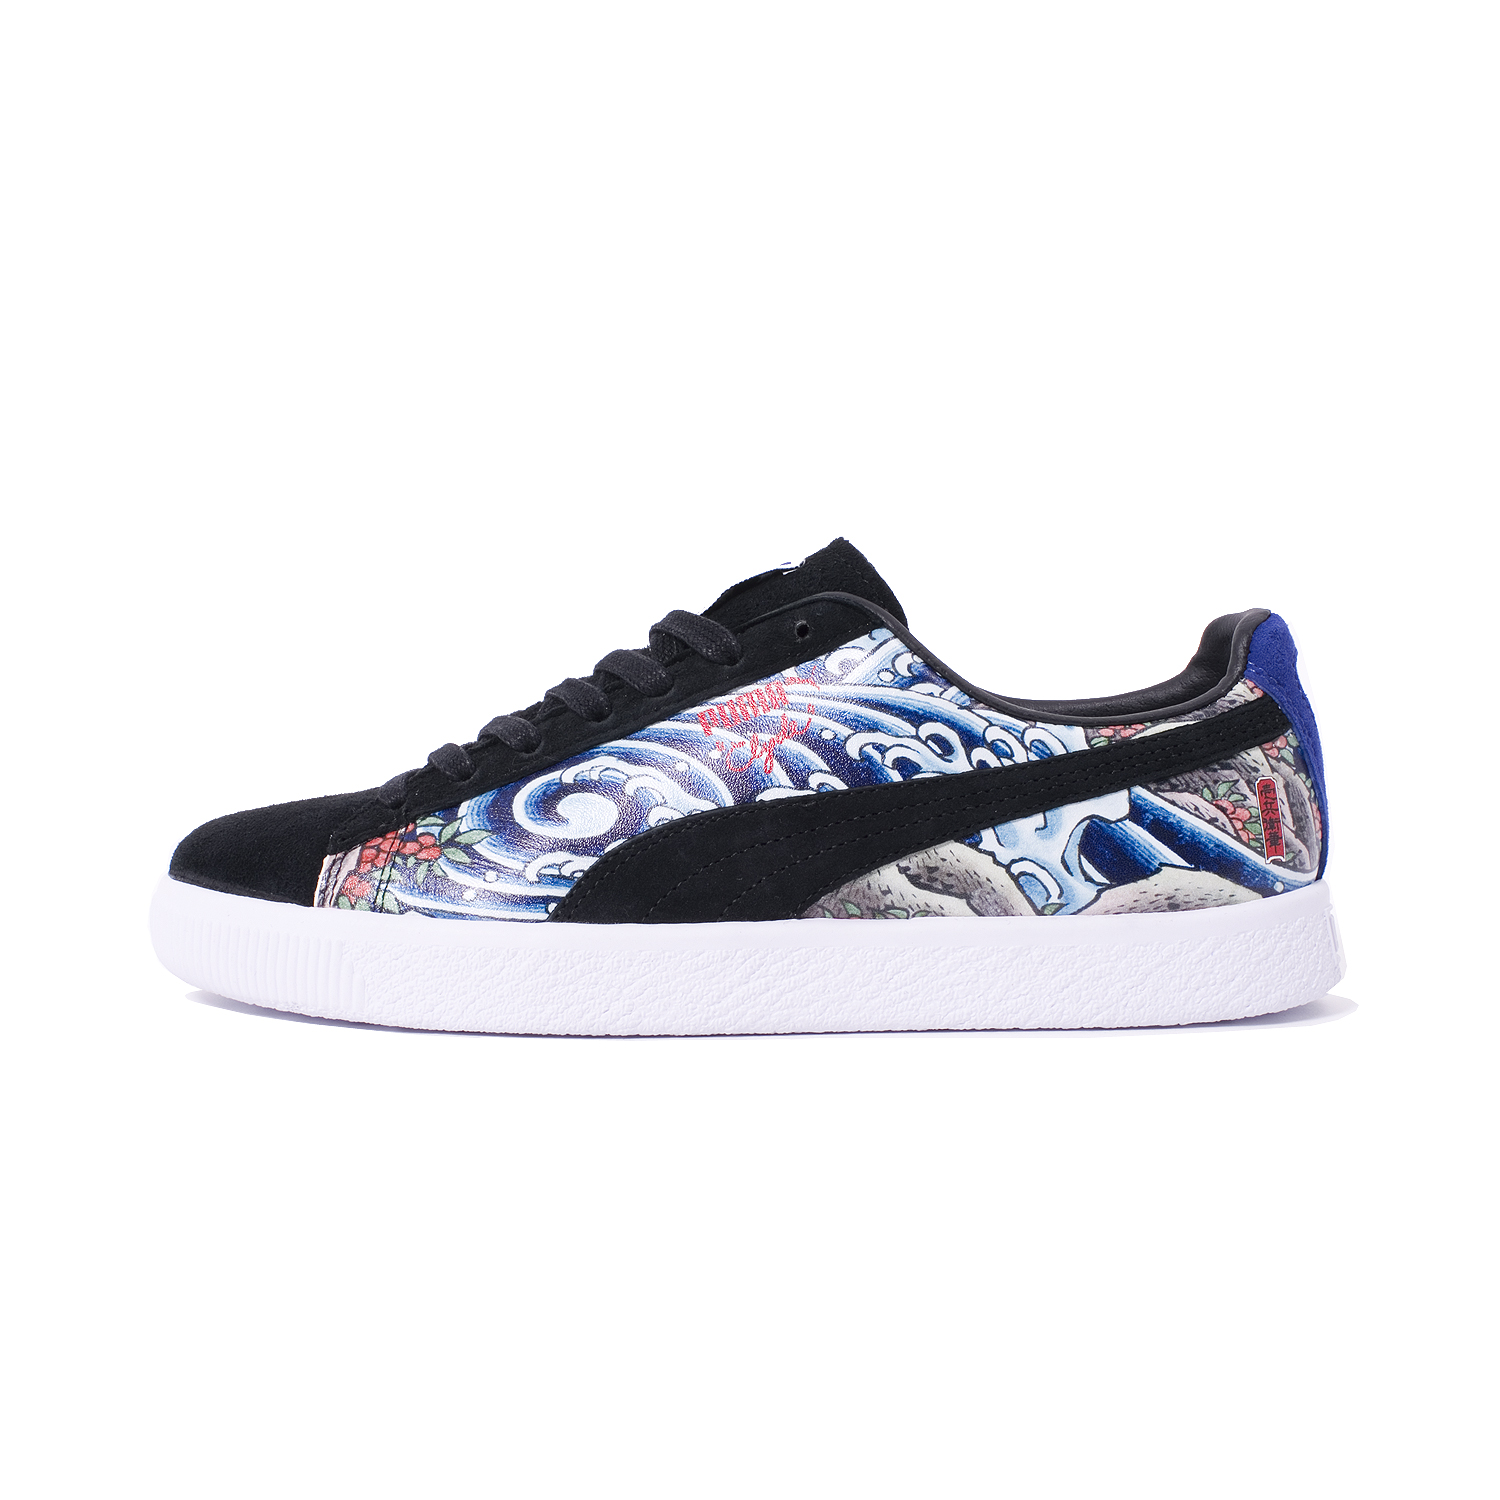 on sale bc0d1 23ab5 Puma Clyde Atmos Three Tides Tattoo | FIRMAMENT - Berlin ...